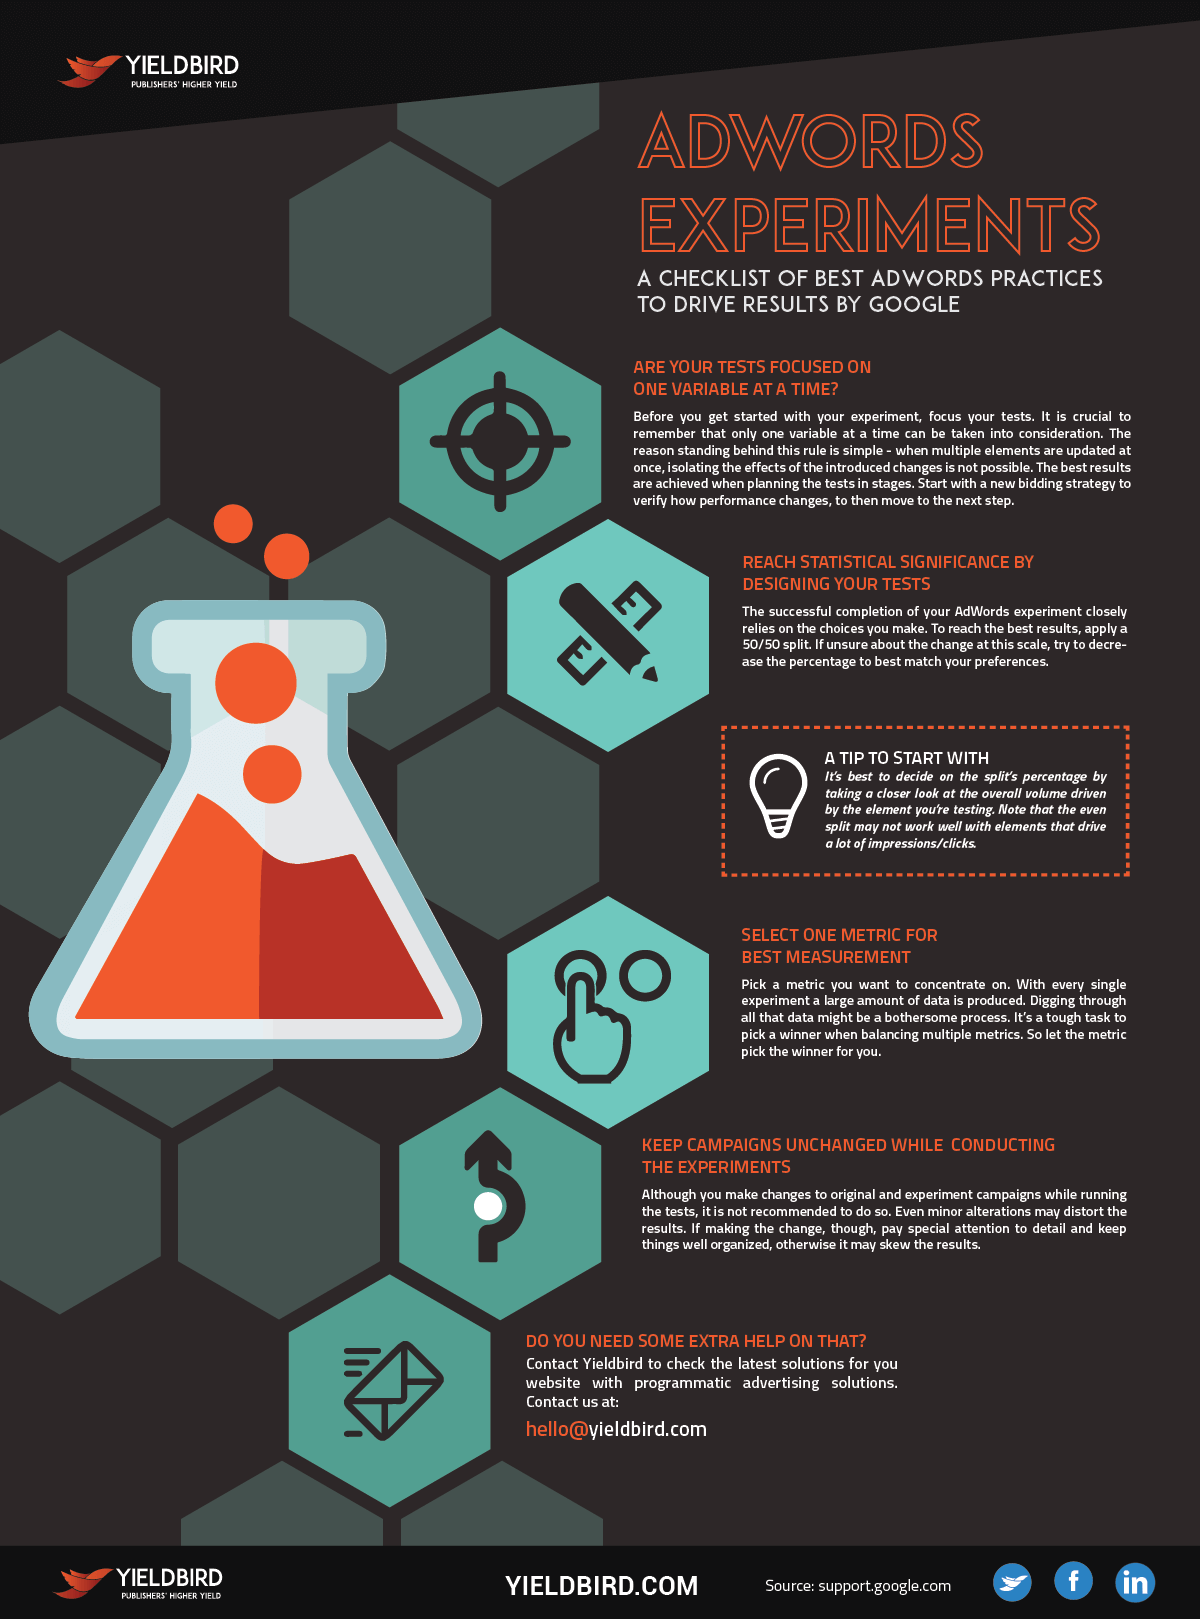 ADWORDS-EXPERIMENTS-YIELDBIRD-INFOGRAPHIC